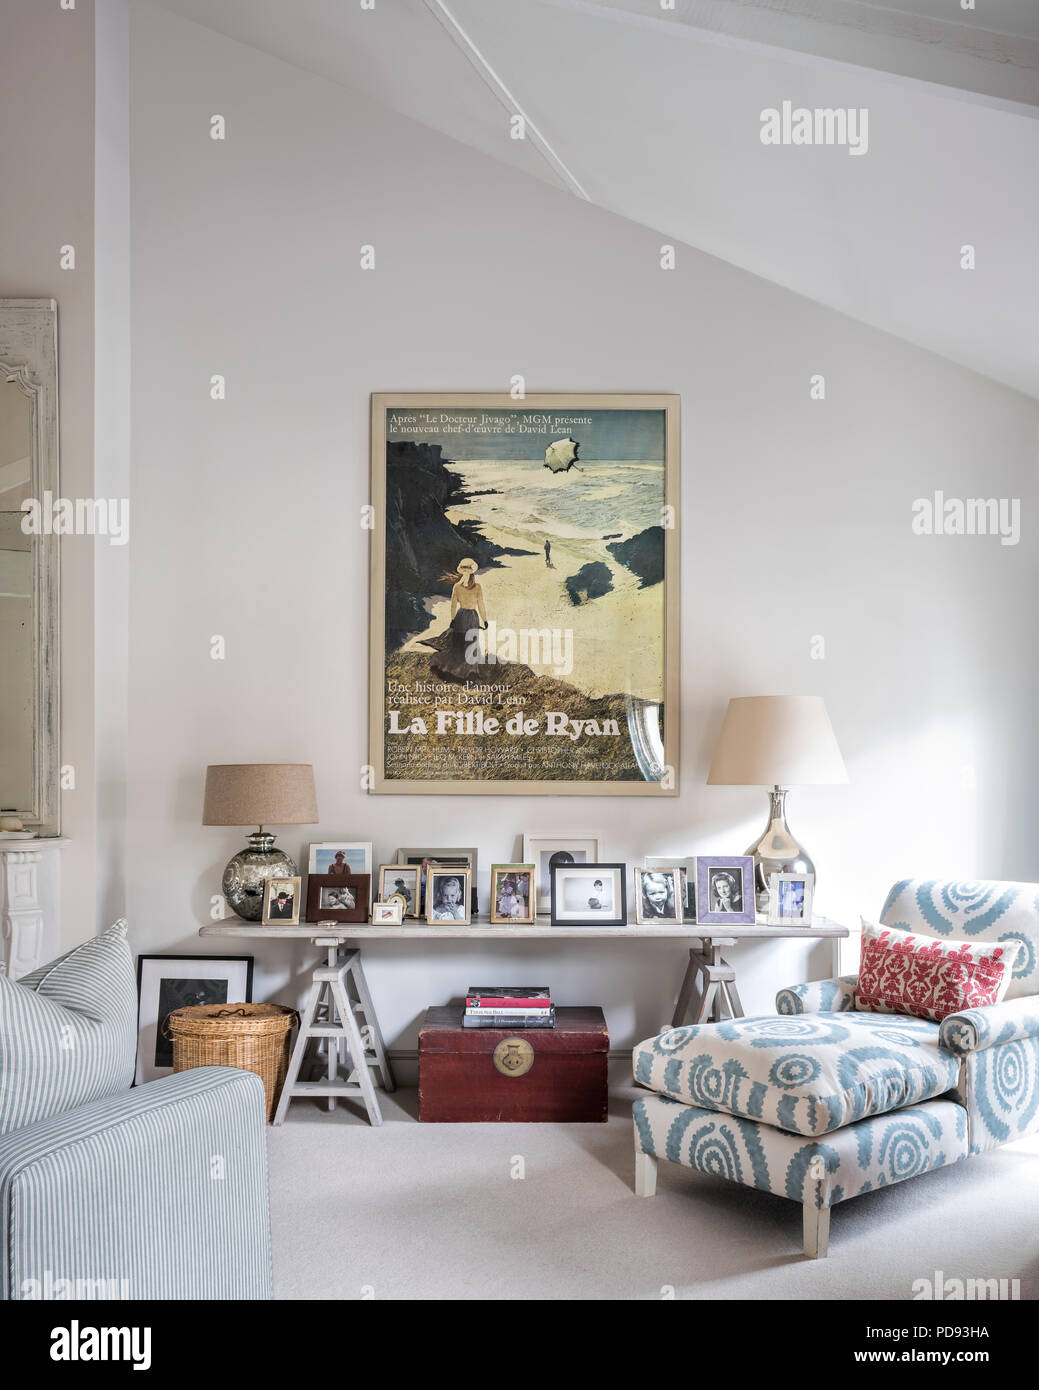 A large vintage film poster on wall of bedroom. The chaise is upholstered in printed linen from Penny Morrison - Stock Image